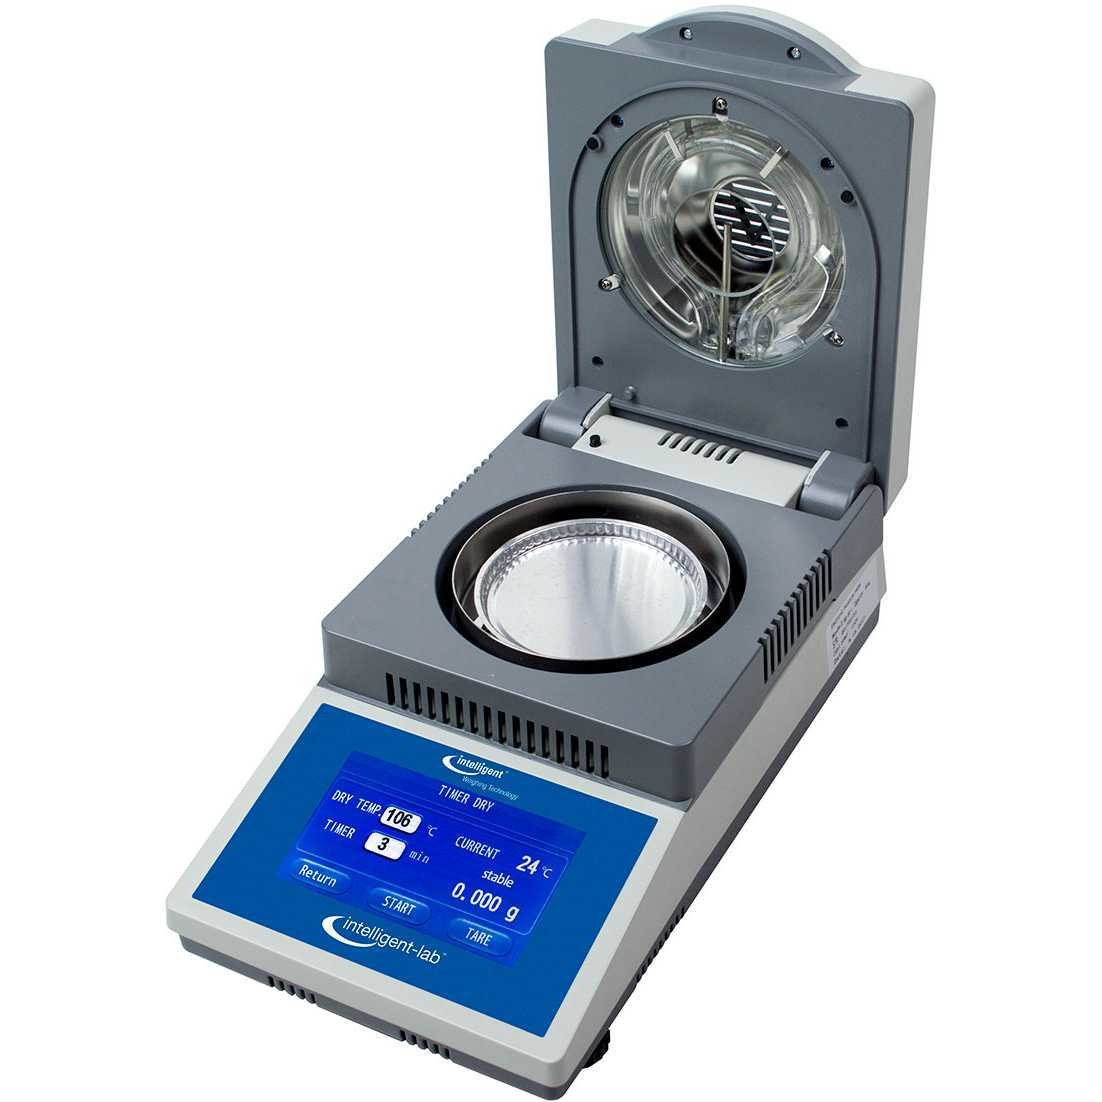 Intelligent Weighing® IL-50.001 TS Moisture Analyzer   (50g. x 0.001g. / 0.01% moisture)